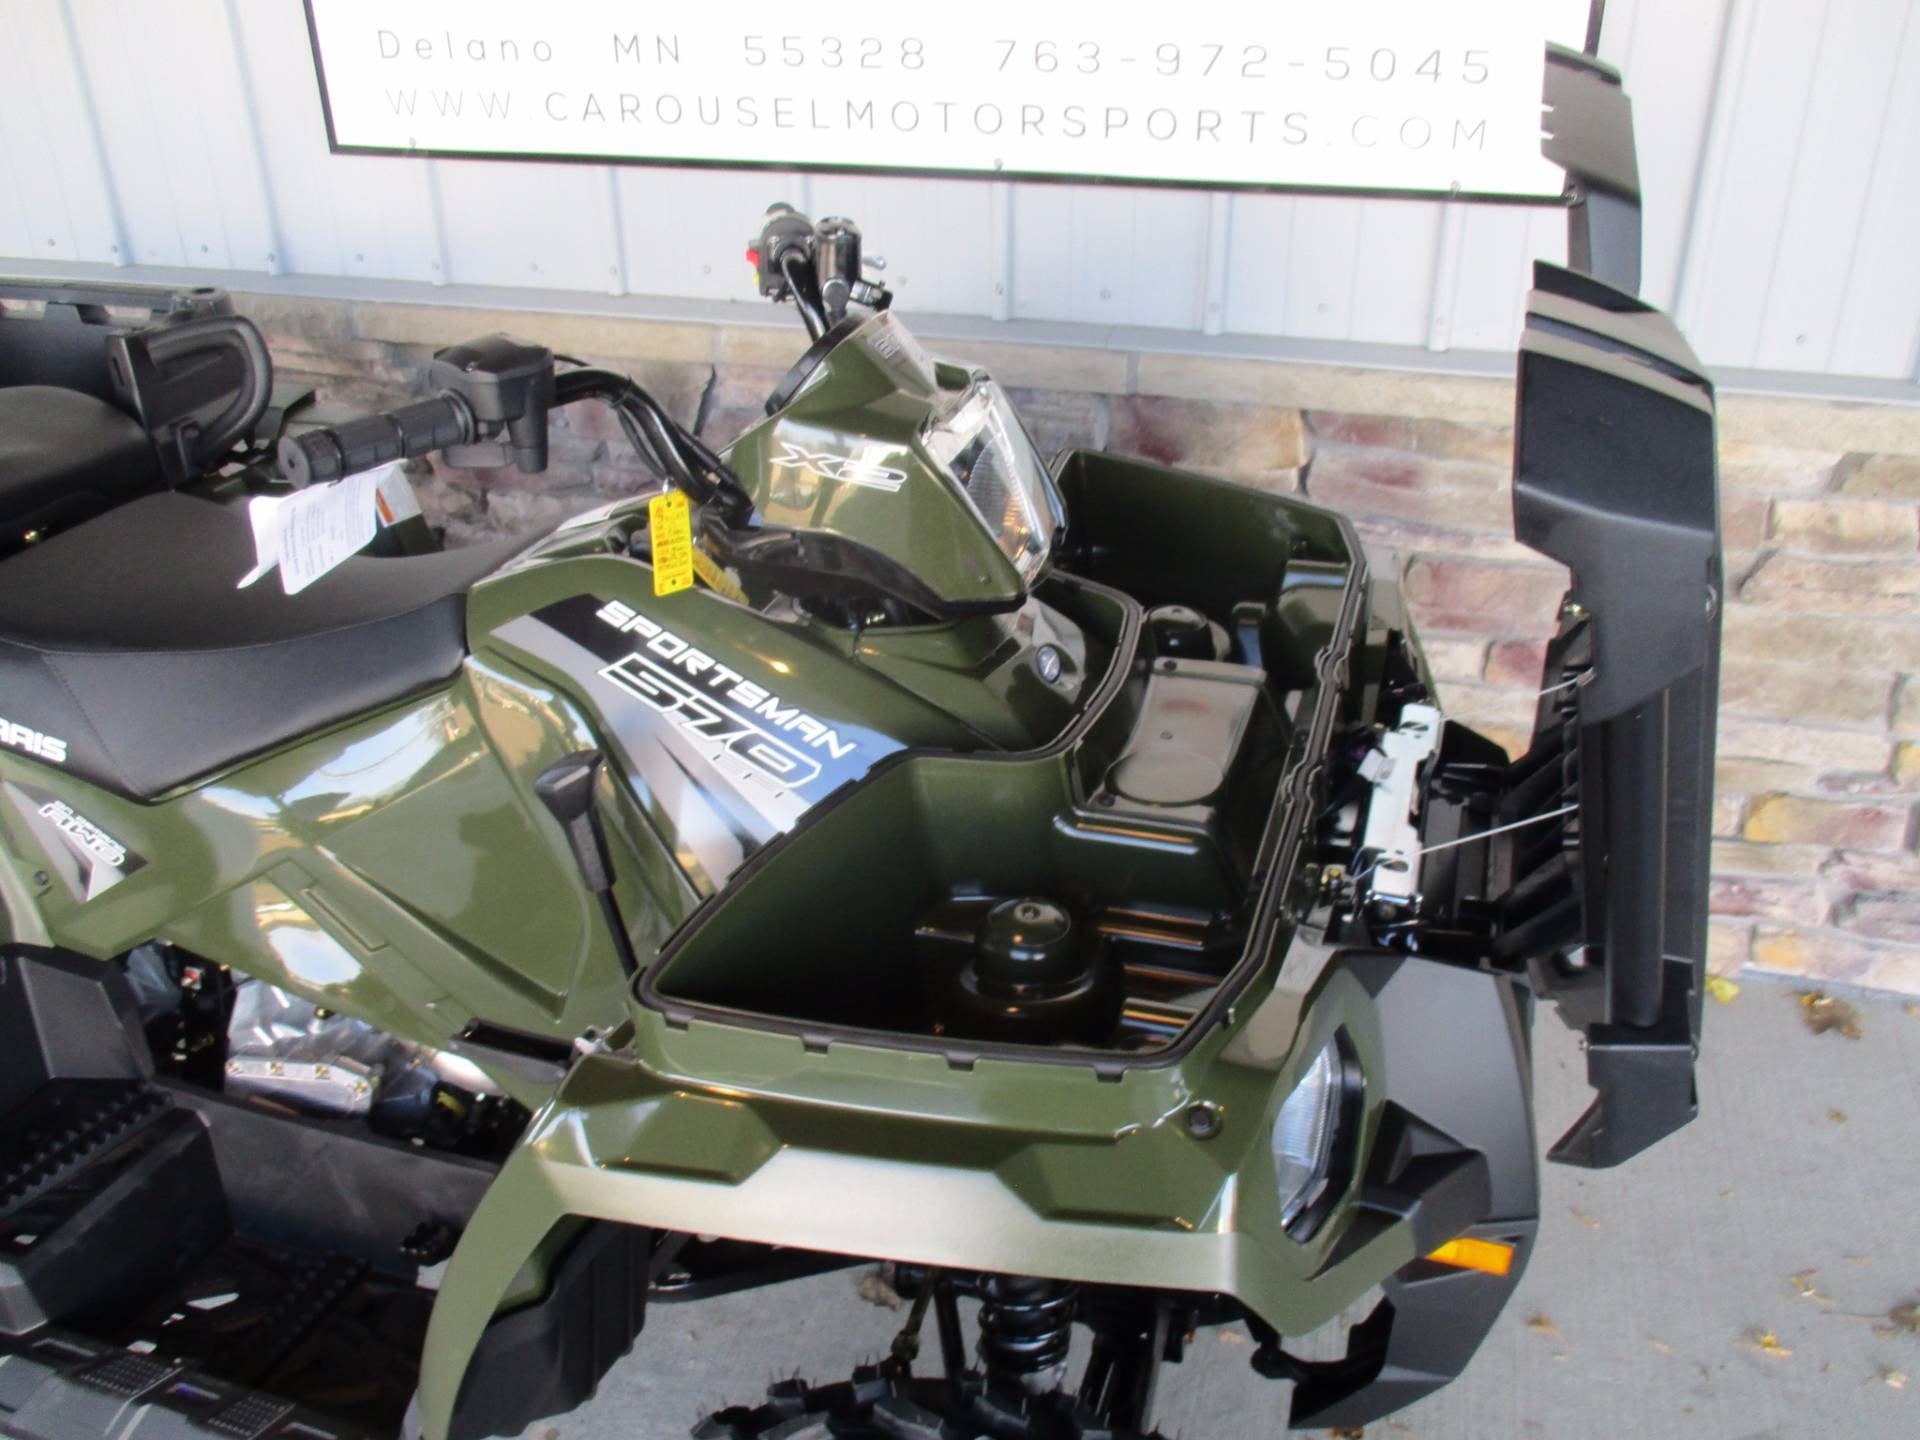 2017 Polaris Sportsman X2 570 EPS in Delano, Minnesota